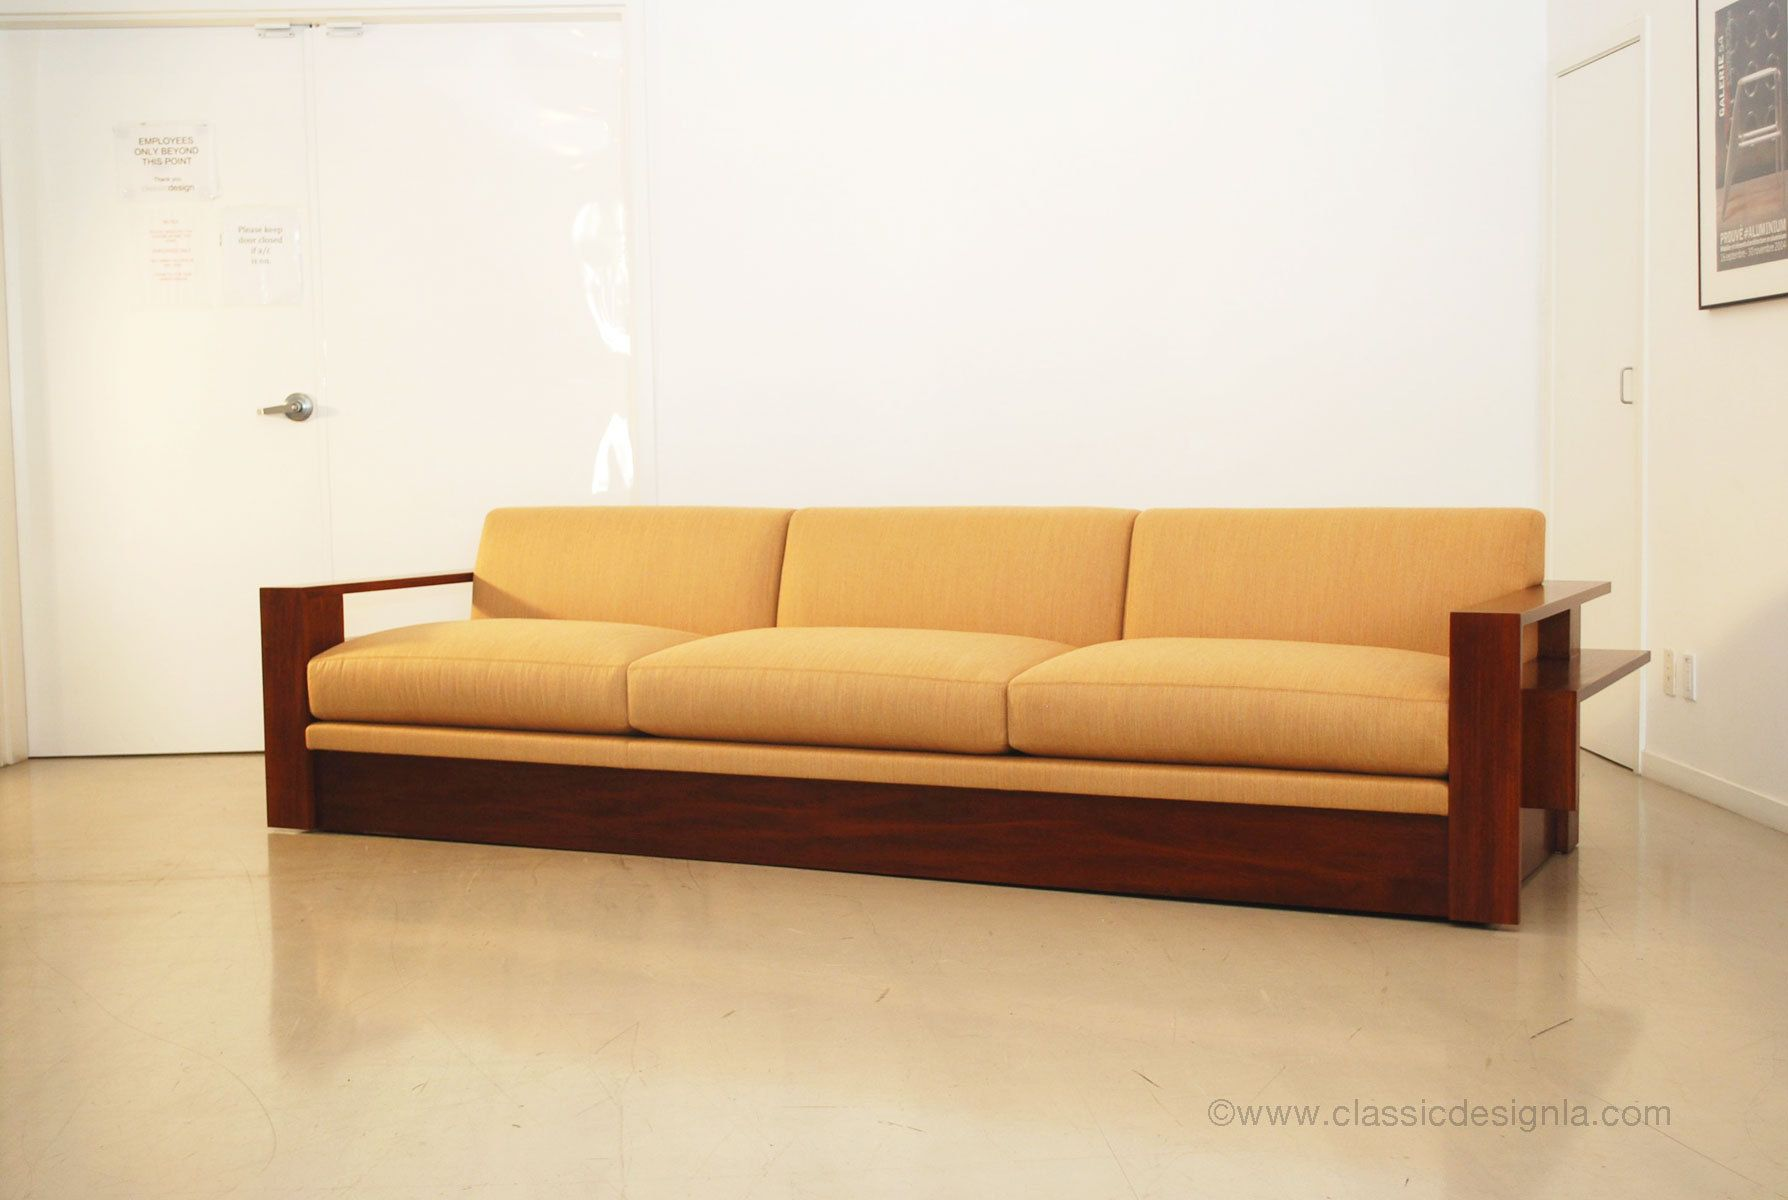 Wooden Sofa Custom Wood Frame Sofa Google Search Wood Frame Sofas